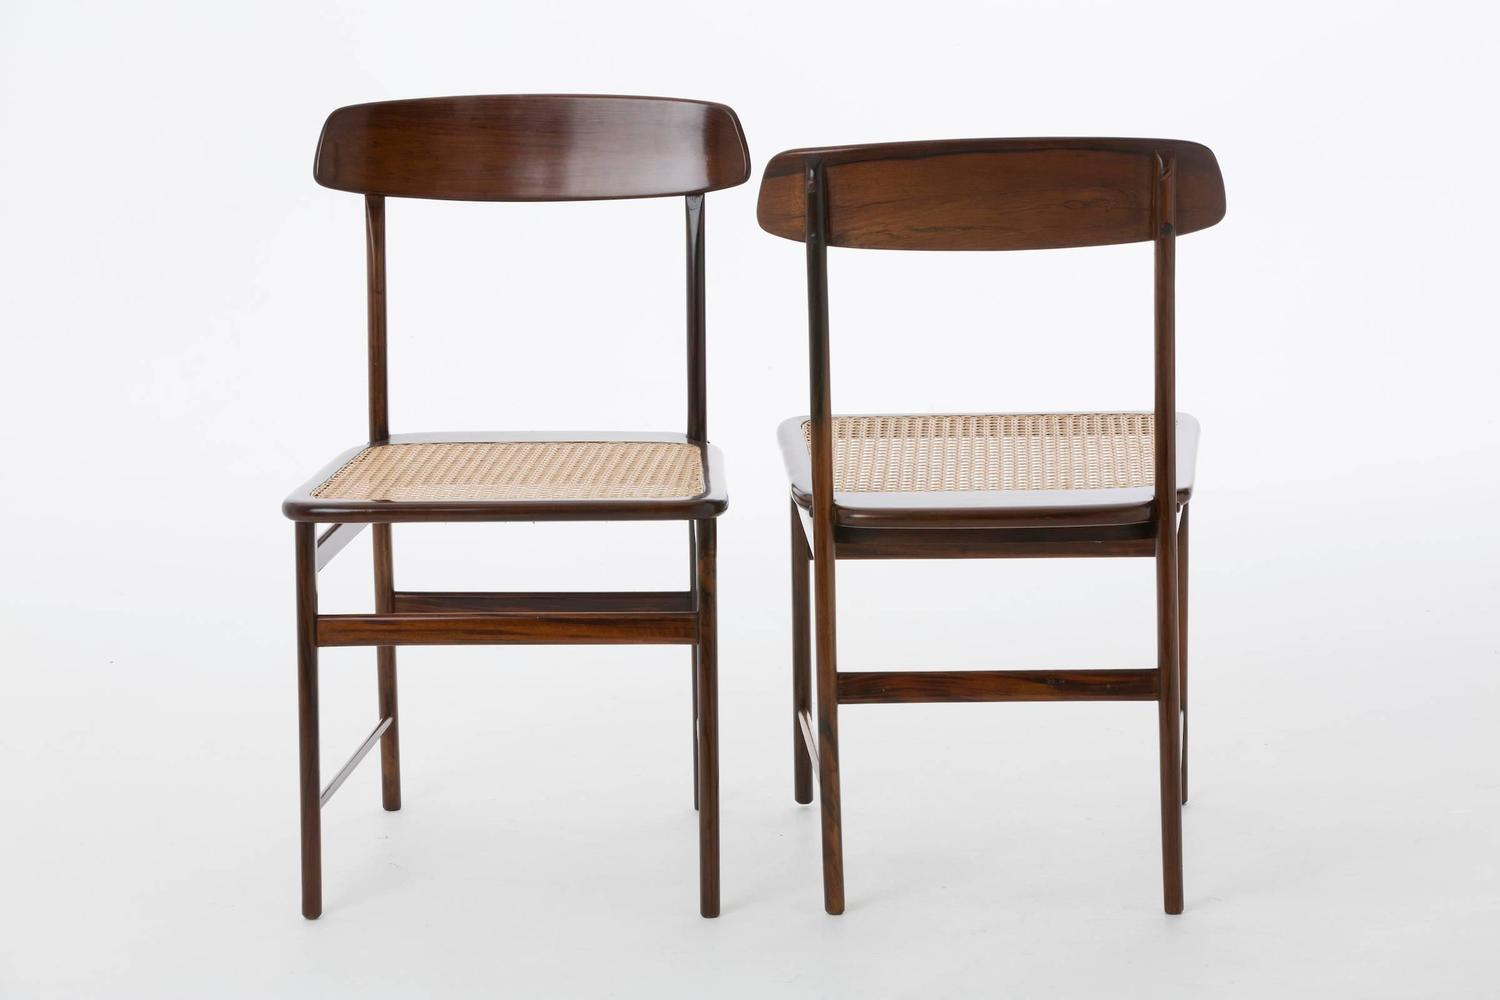 Lucio costa chairs in brazilian jacarand wood by sergio for 7 furniture doral fl